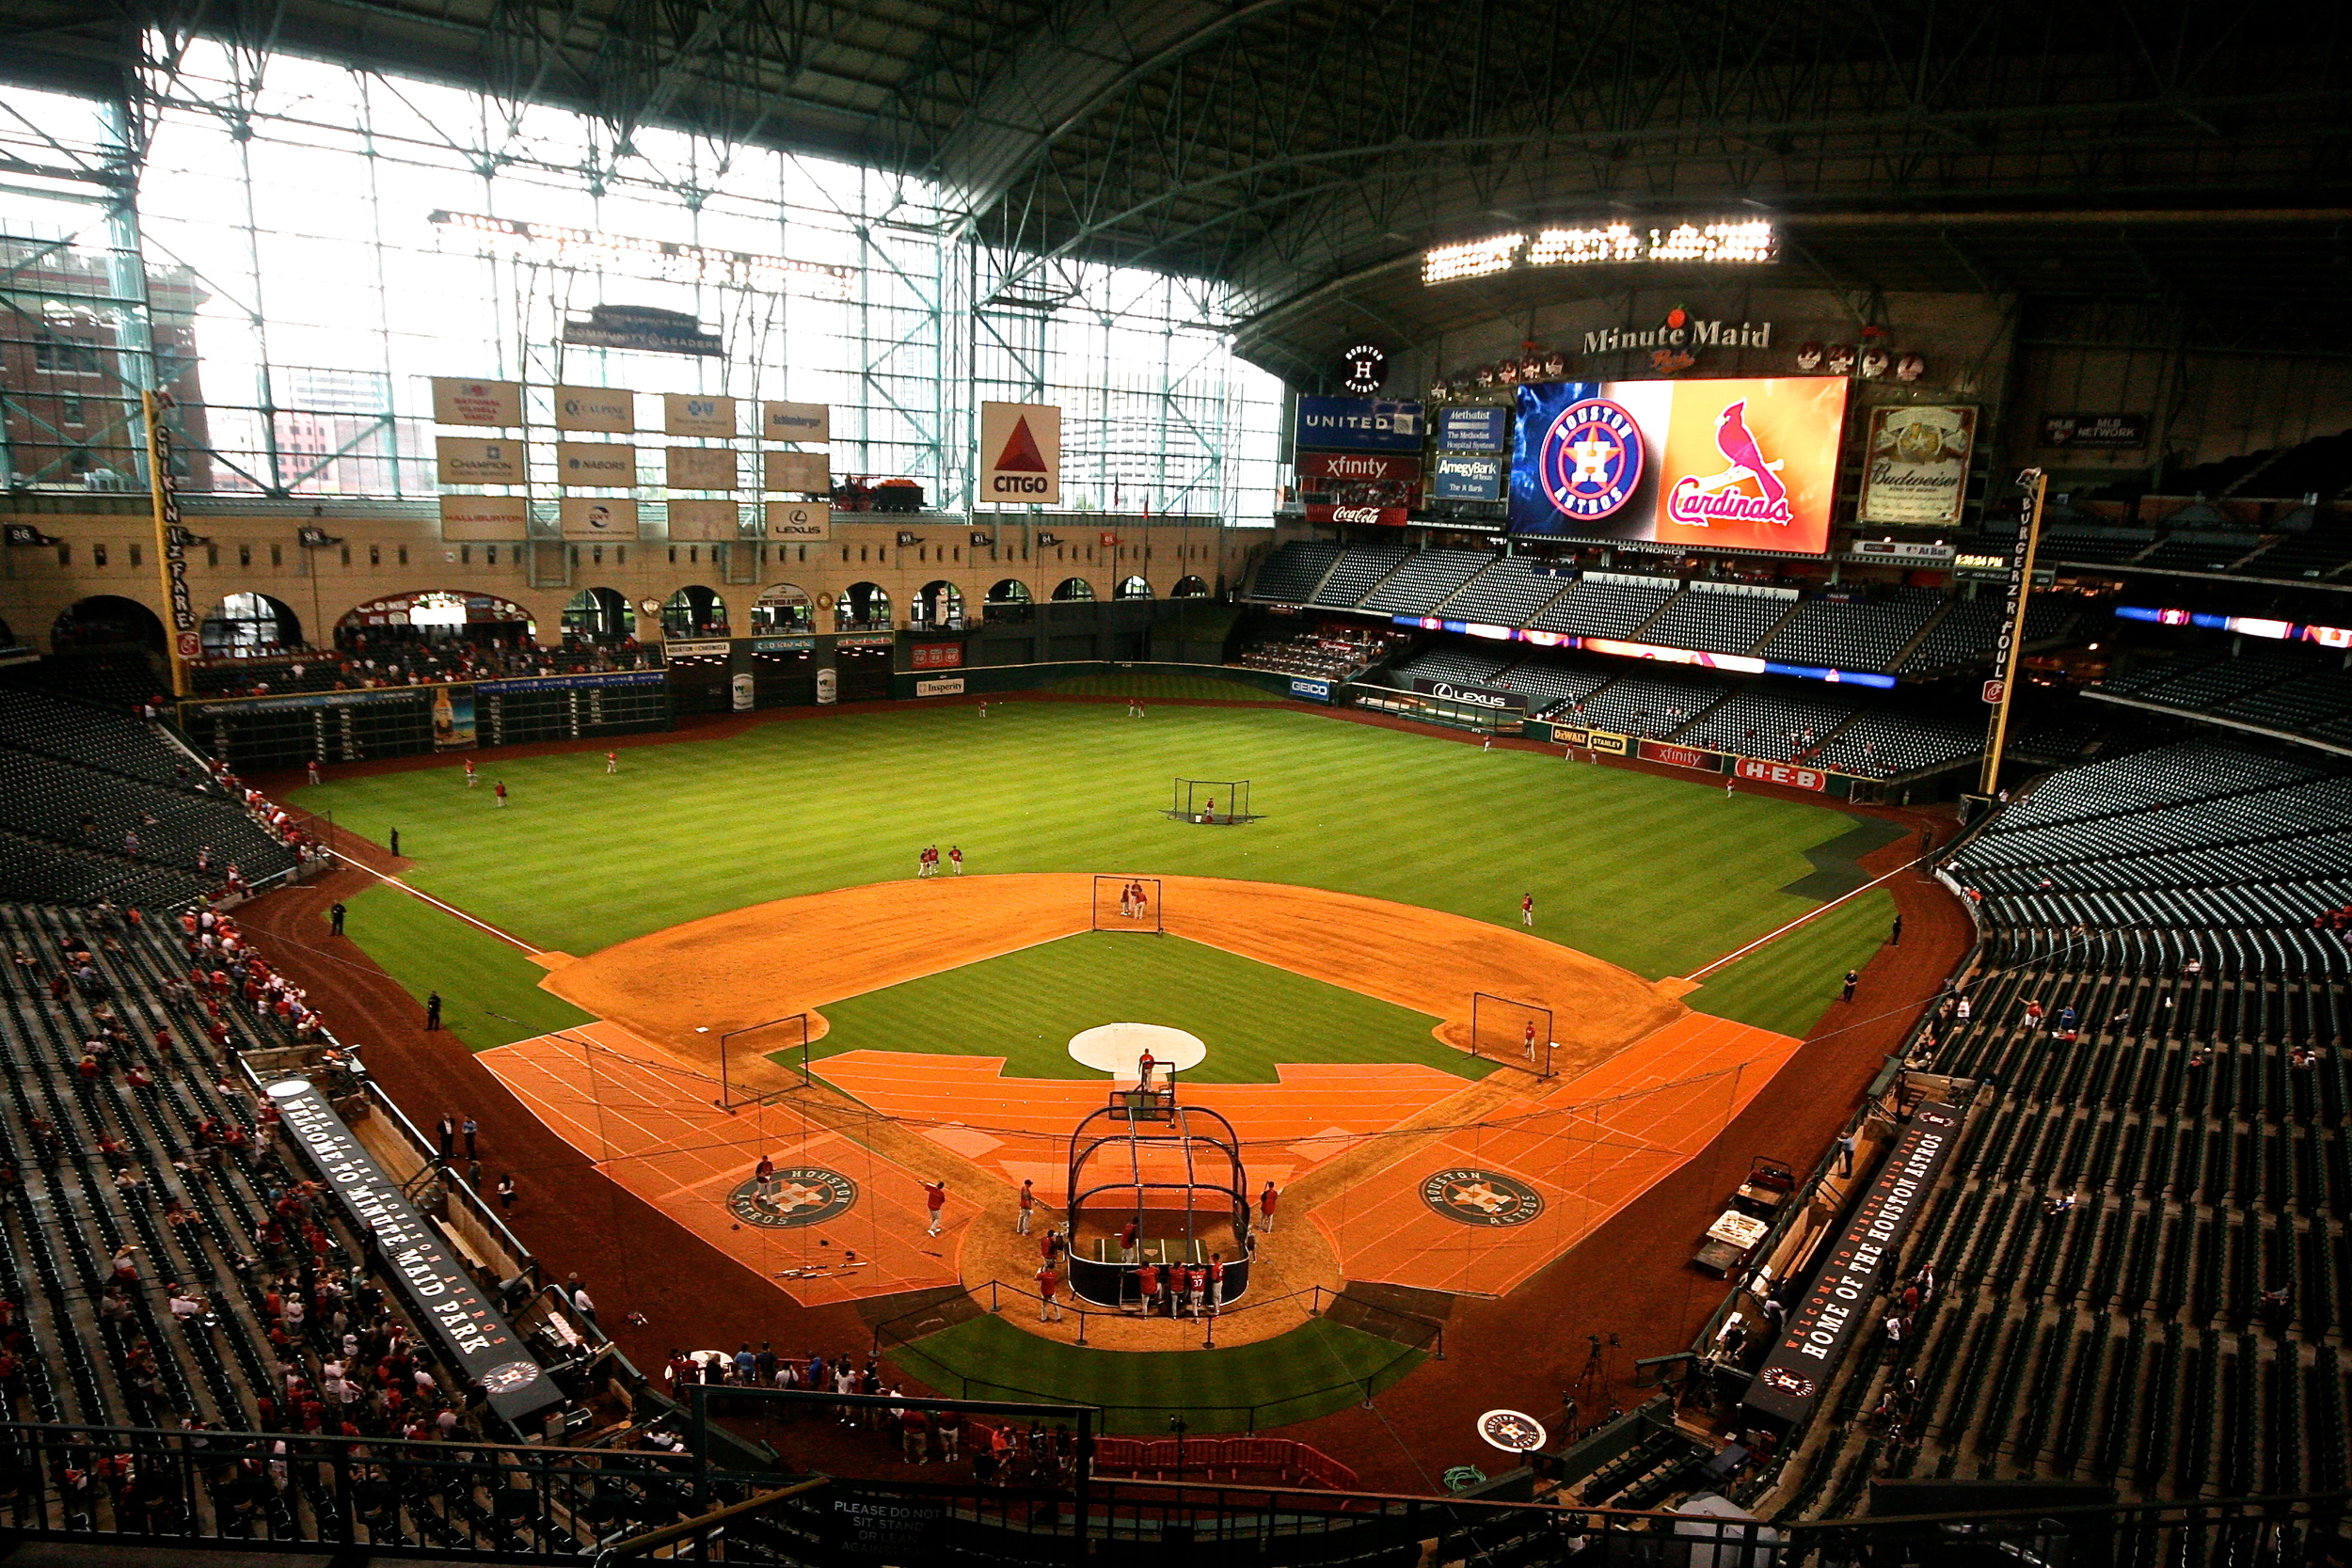 Minute Maid Park batting practice